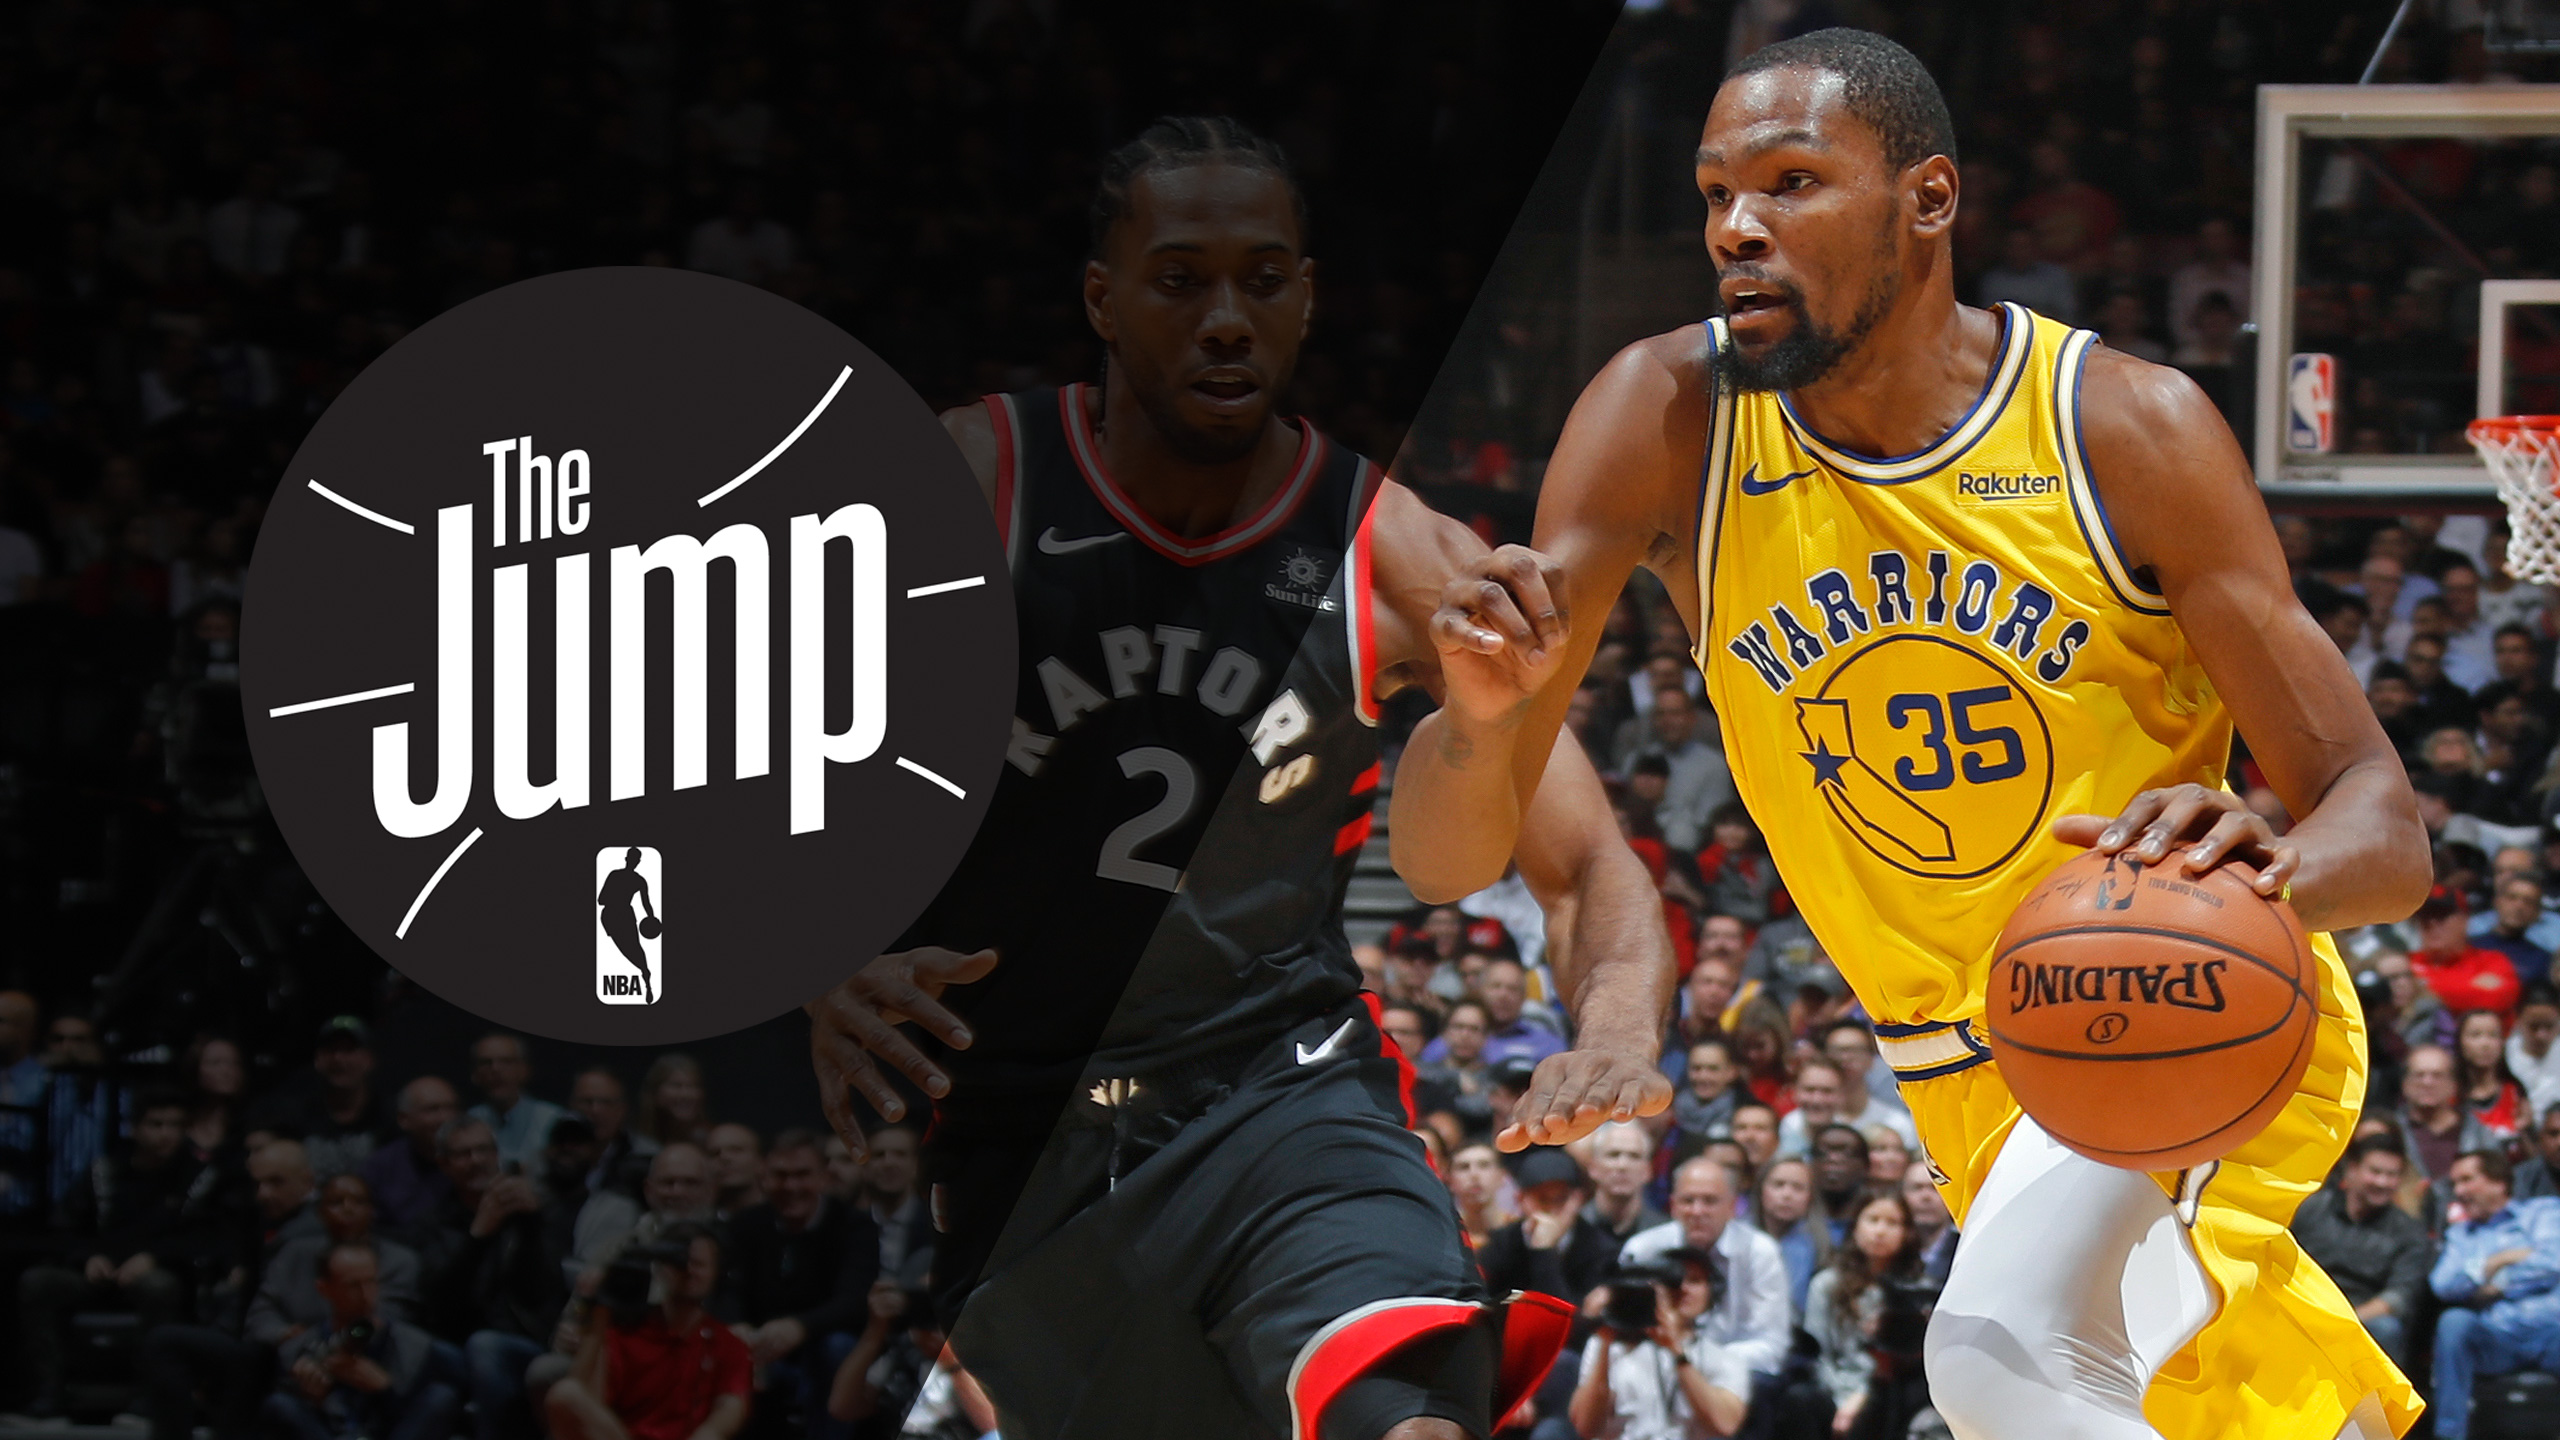 Wed, 12/12 - NBA: The Jump